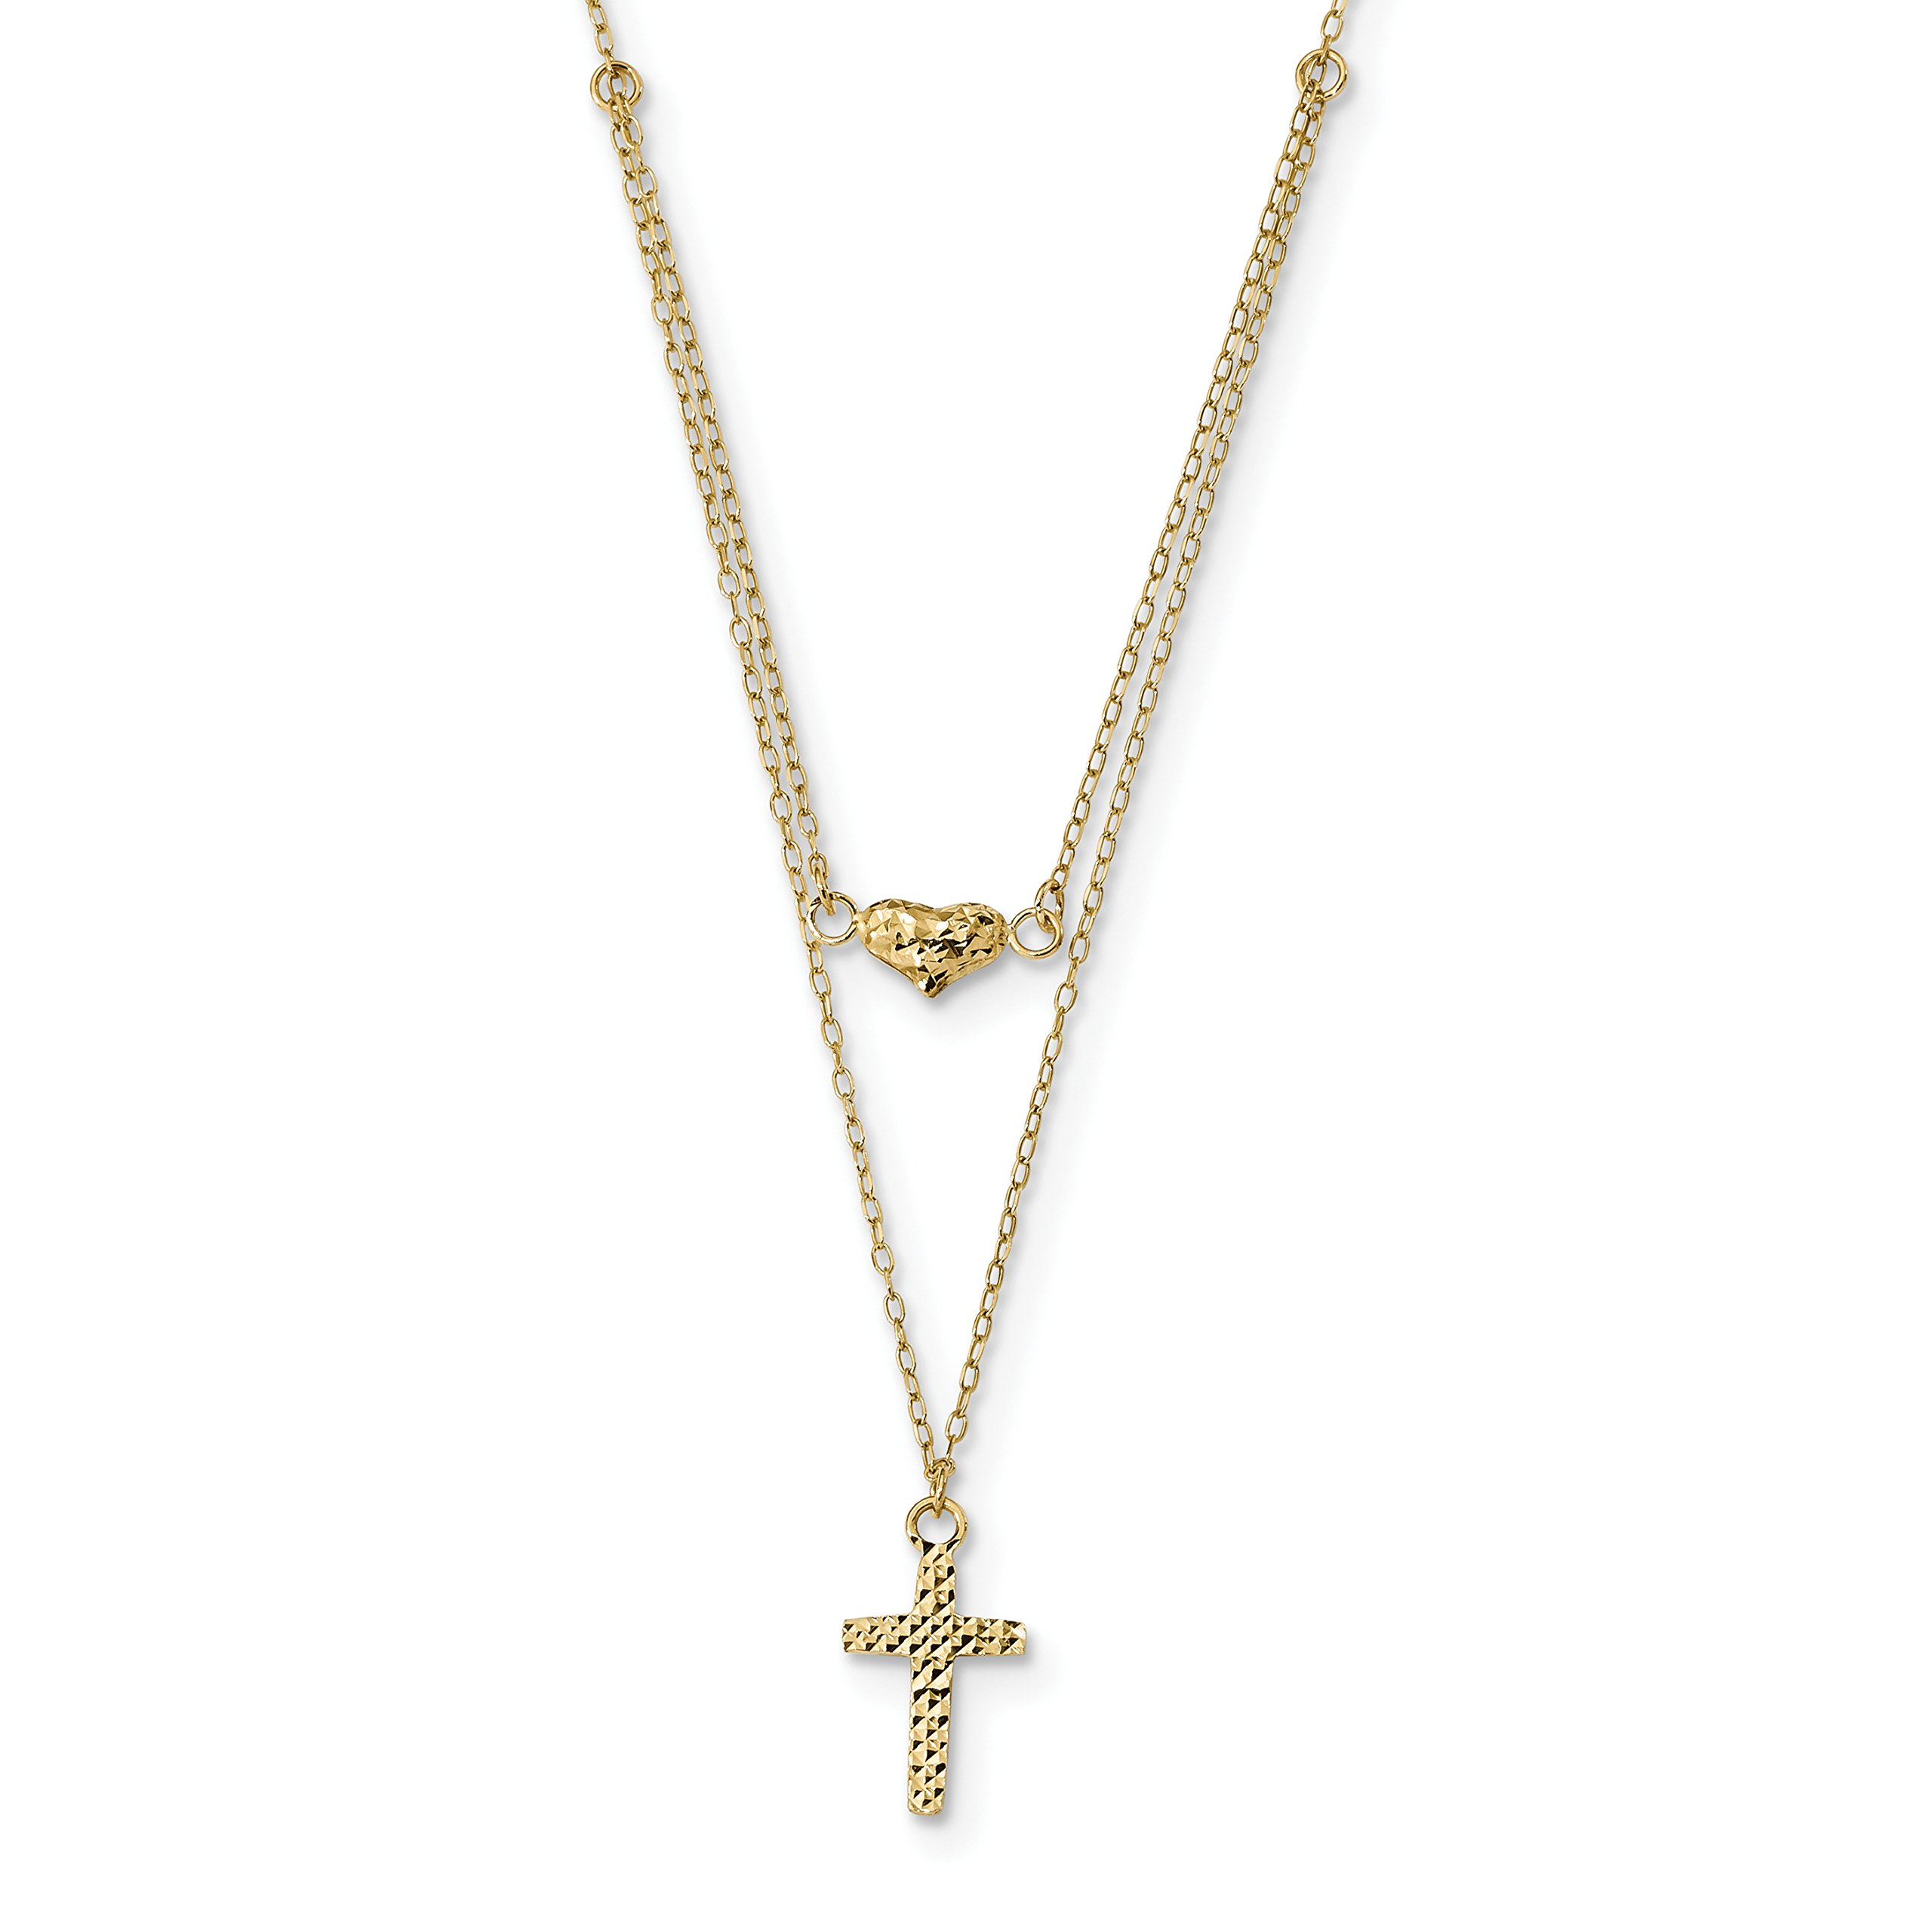 ICE CARATS 14k Yellow Gold 2 Strand Cross Religious Heart 2in. Extension Chain Necklace Fancy Fine Jewelry Gift For Women Heart